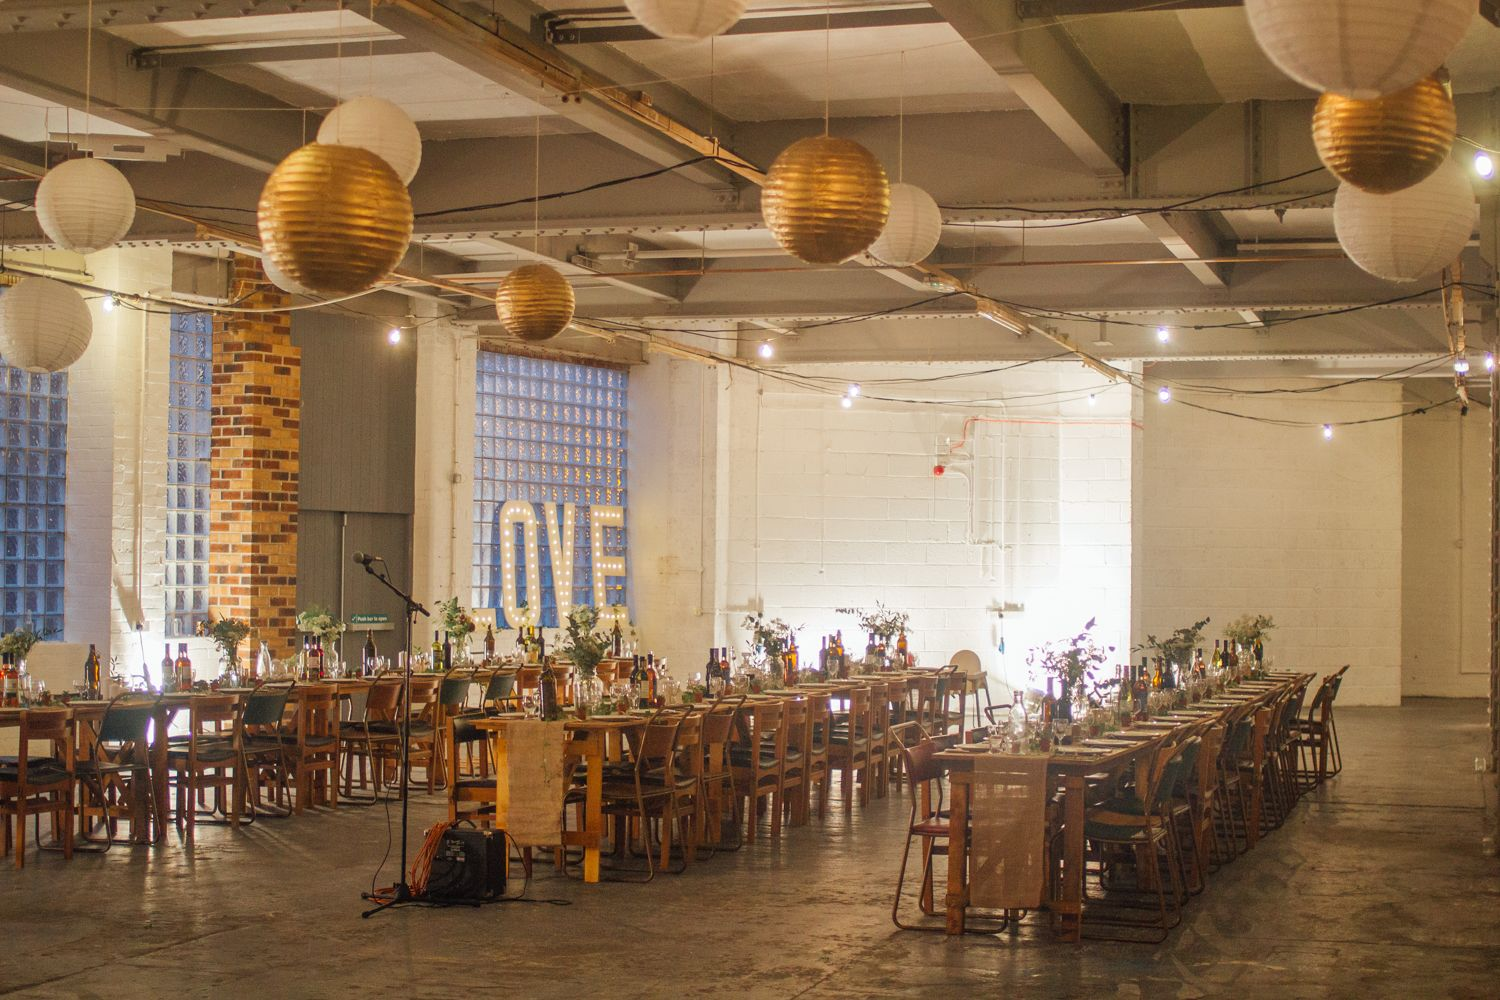 Lu Toms Urban Warehouse Wedding Sheffield Industrial Rustic Wooden Benches